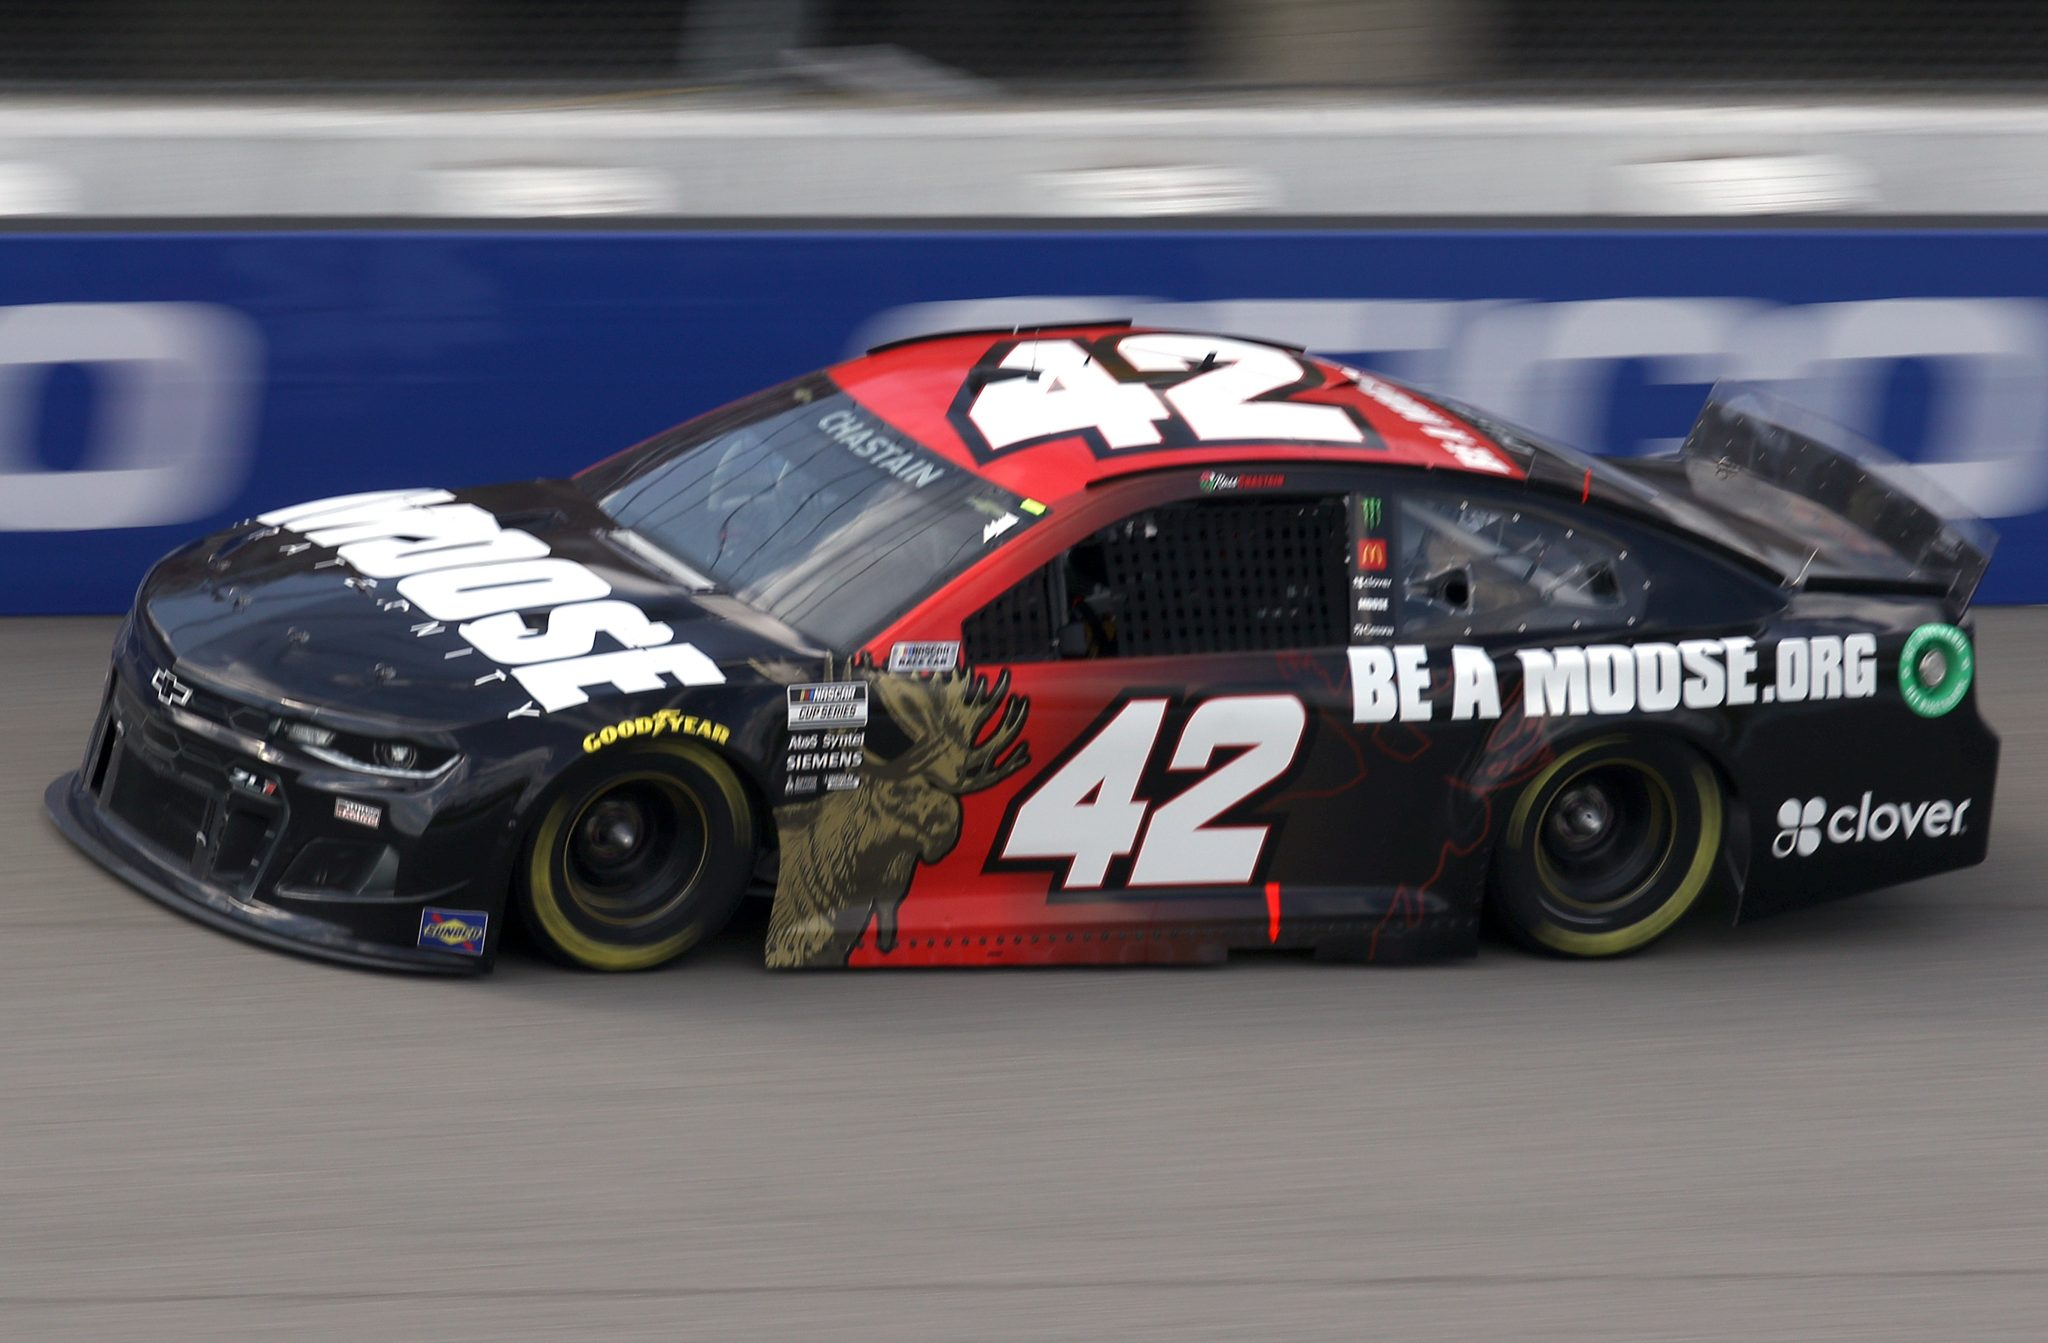 BROOKLYN, MICHIGAN - AUGUST 22: Ross Chastain, driver of the #42 Moose Fraternity Chevrolet, drives during the NASCAR Cup Series FireKeepers Casino 400 at Michigan International Speedway on August 22, 2021 in Brooklyn, Michigan. (Photo by Sean Gardner/Getty Images) | Getty Images